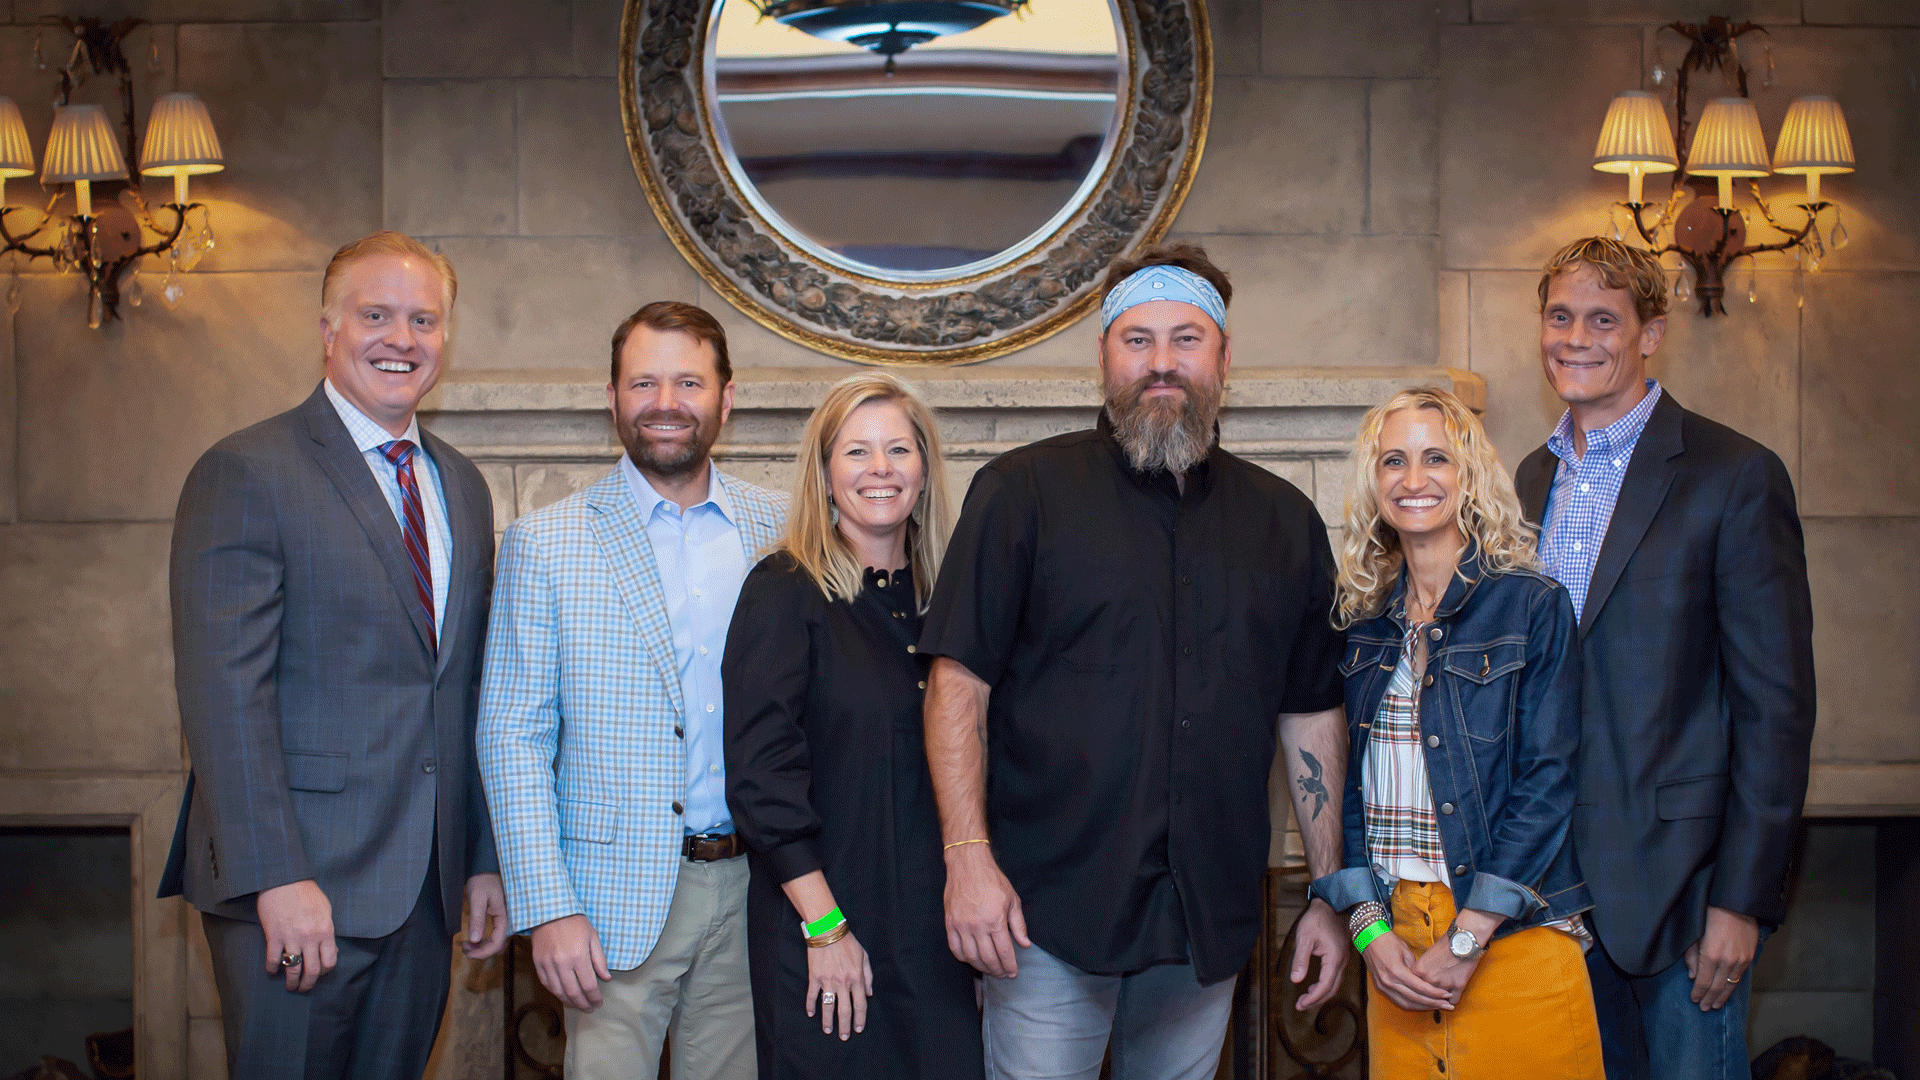 Head of School Dr. Don Davis poses with Distinguished Speaker Chairs and Willie Robertson